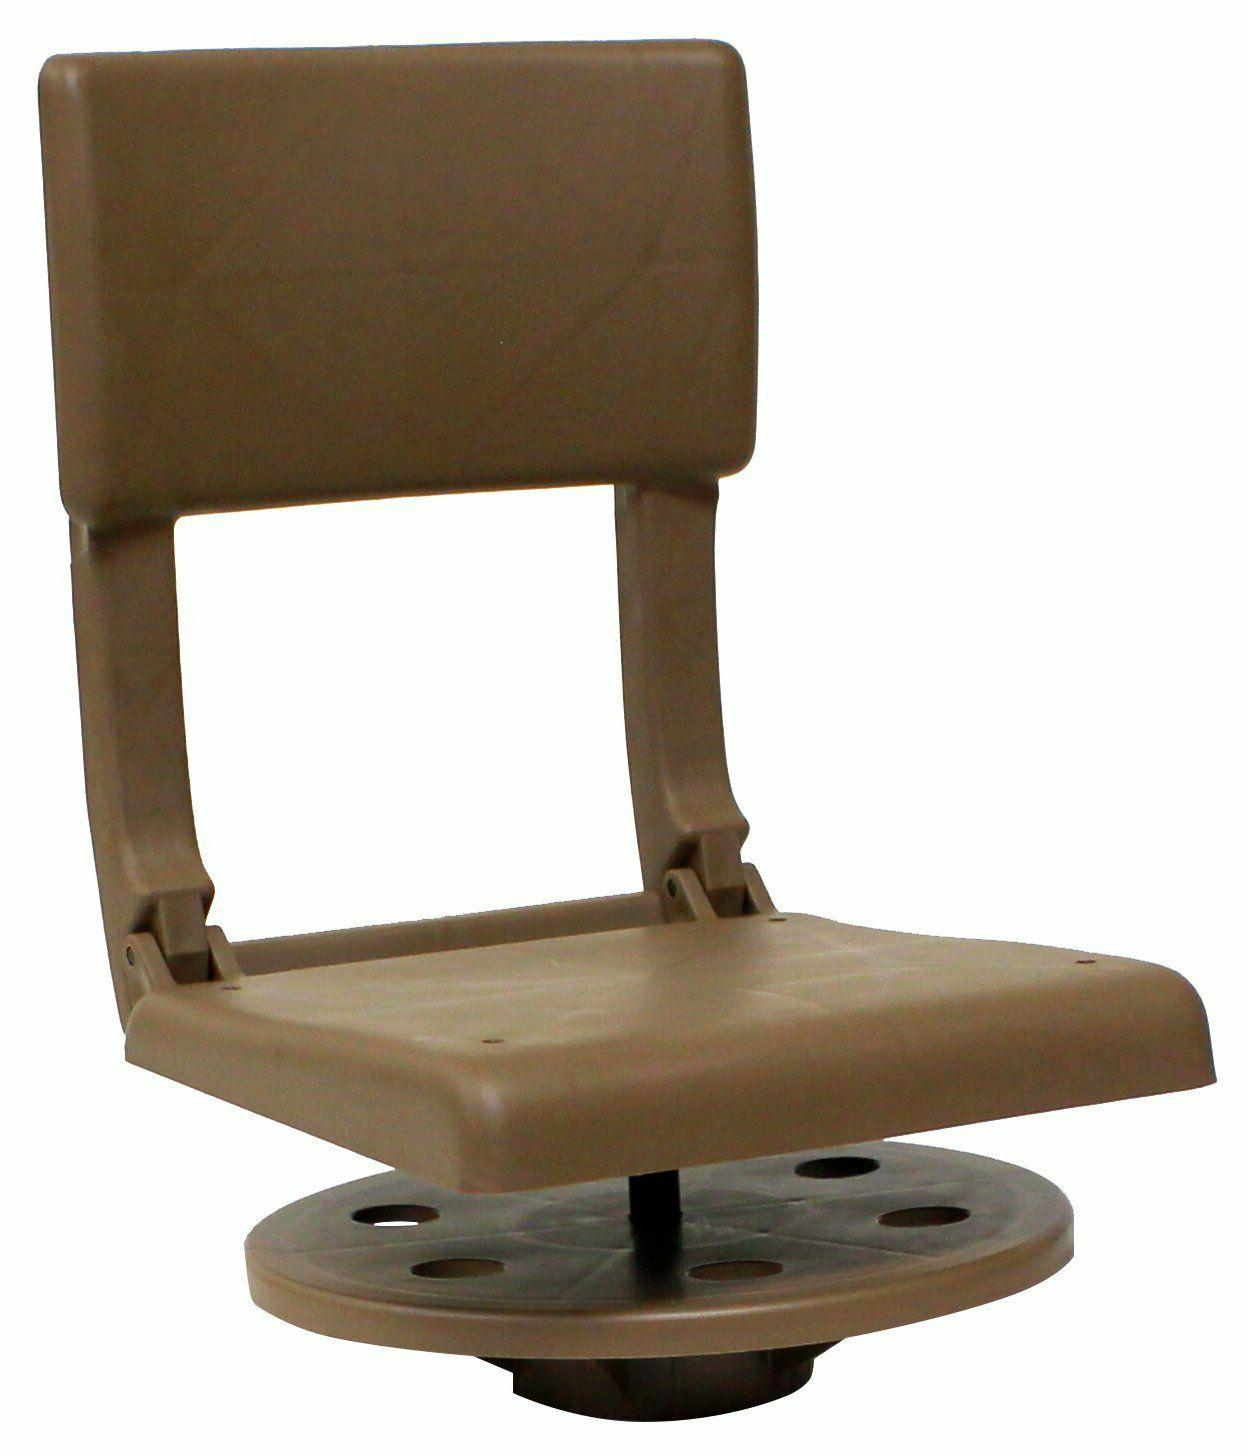 hunting seat for 5 gallon bucket portable